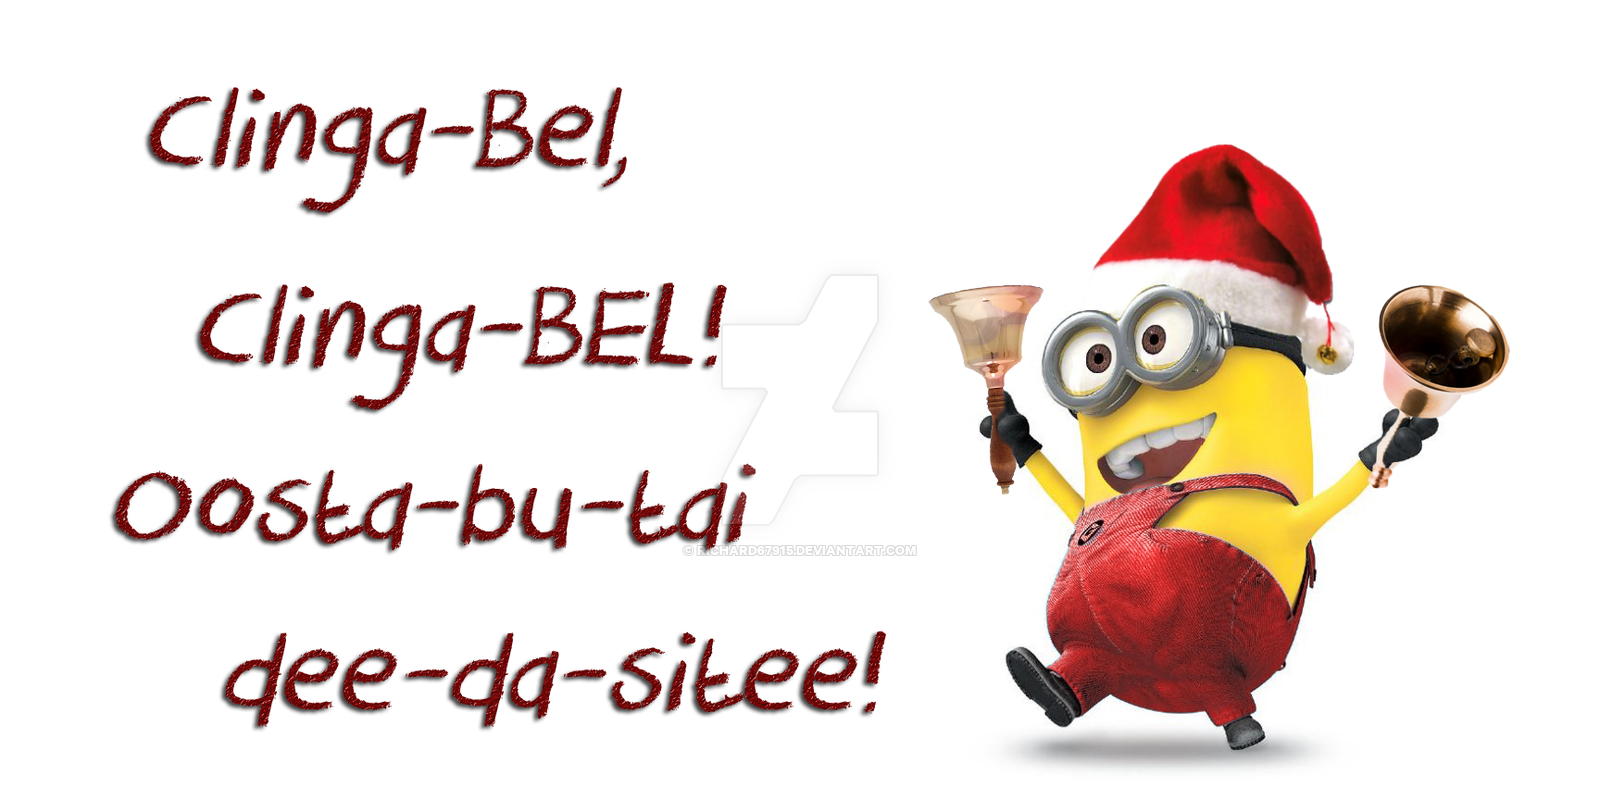 Funny Minion Merry Christmas Wallpapers Sayings: Merry Christmas Minions Clipart